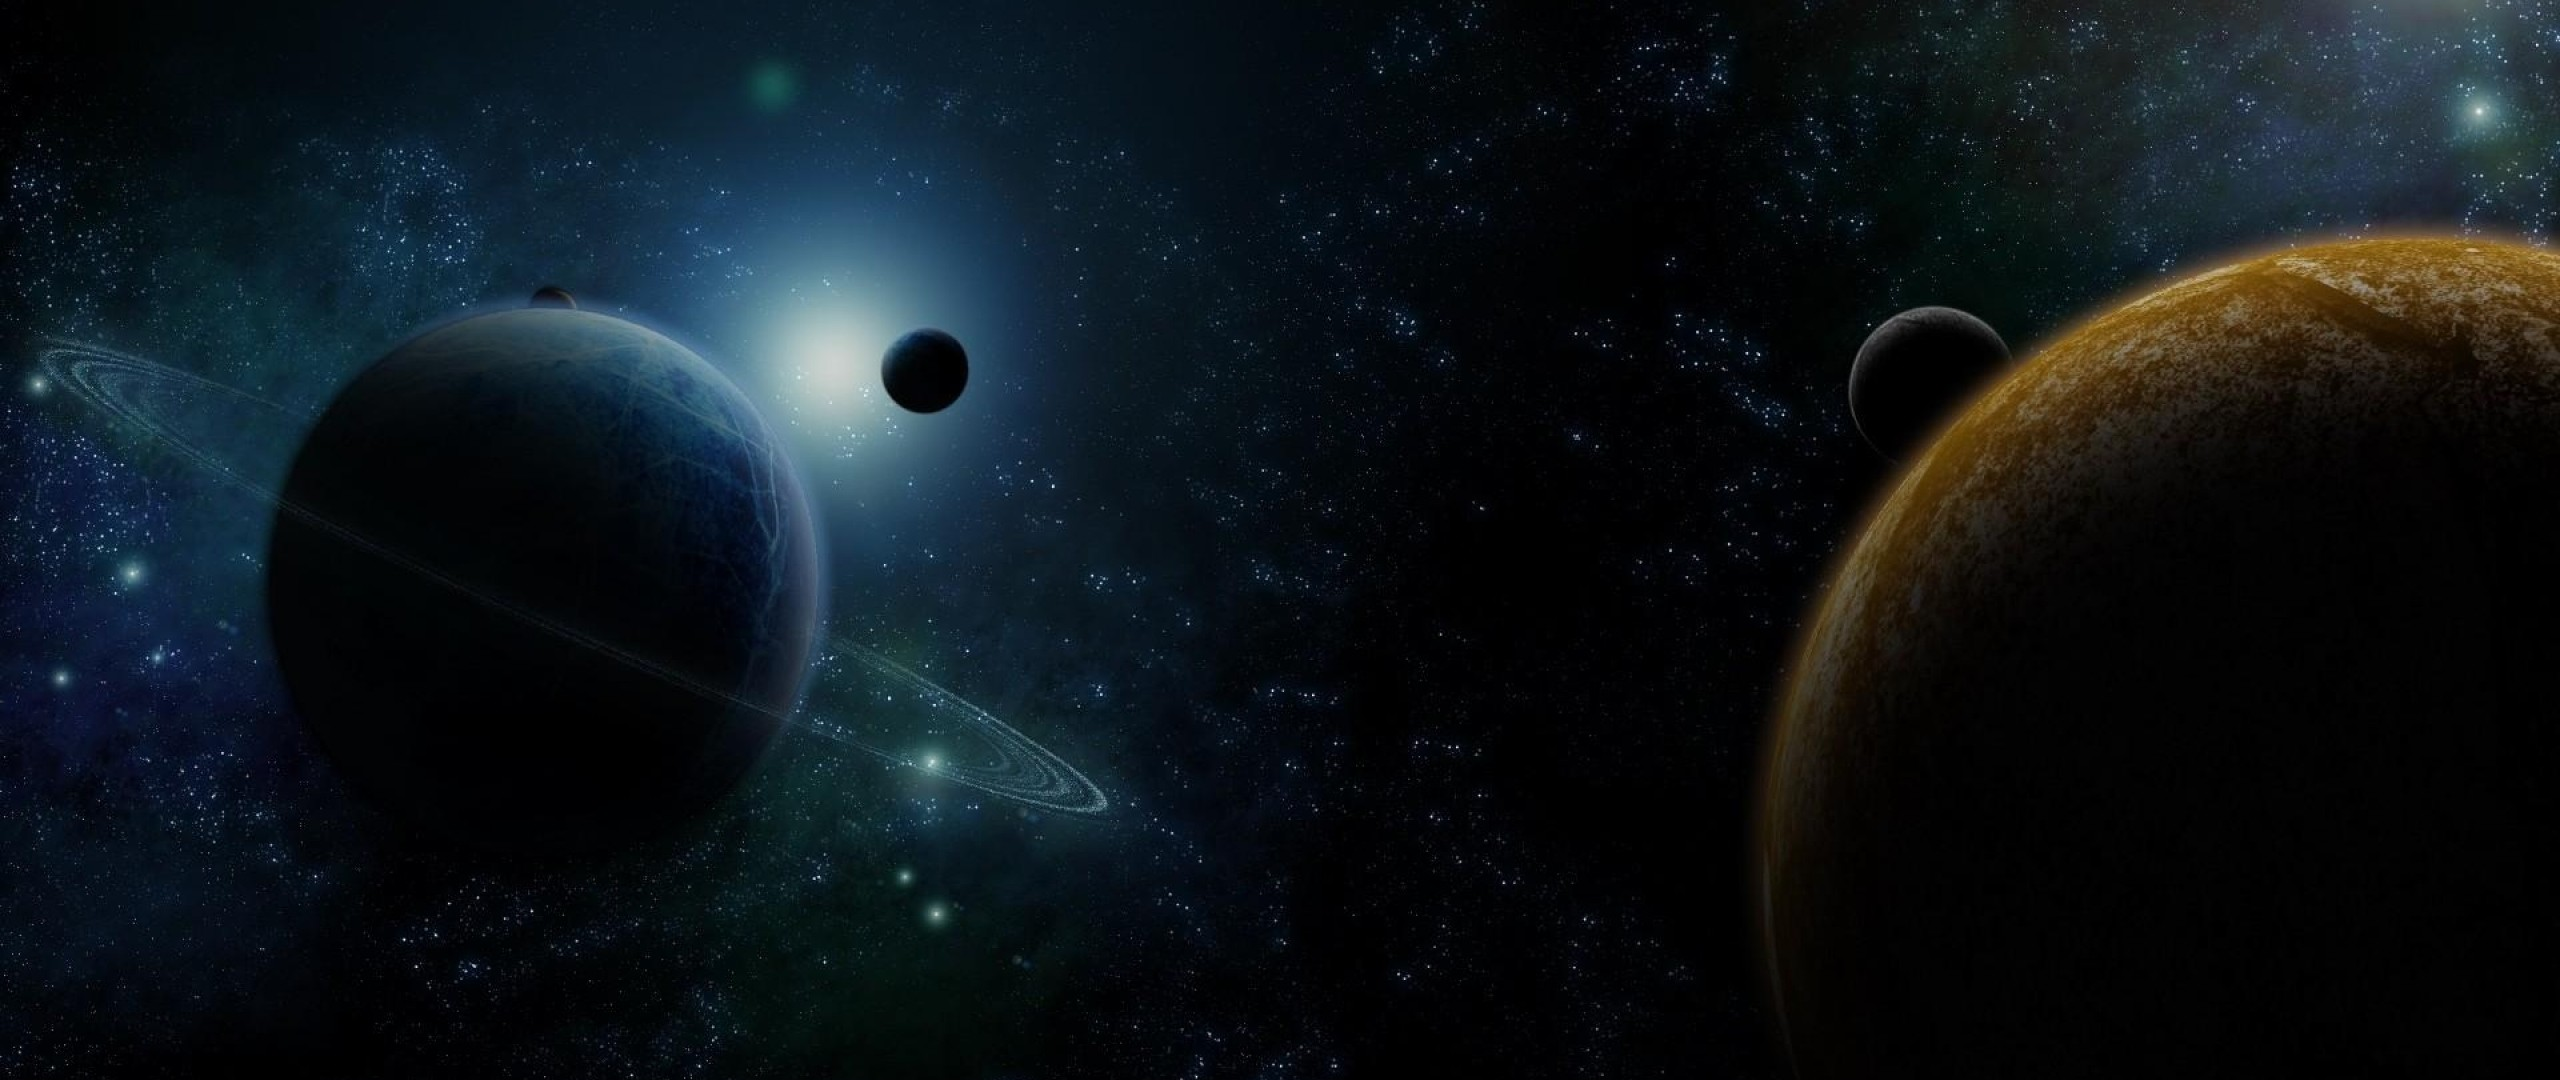 Wallpaper planet, ring, star, space